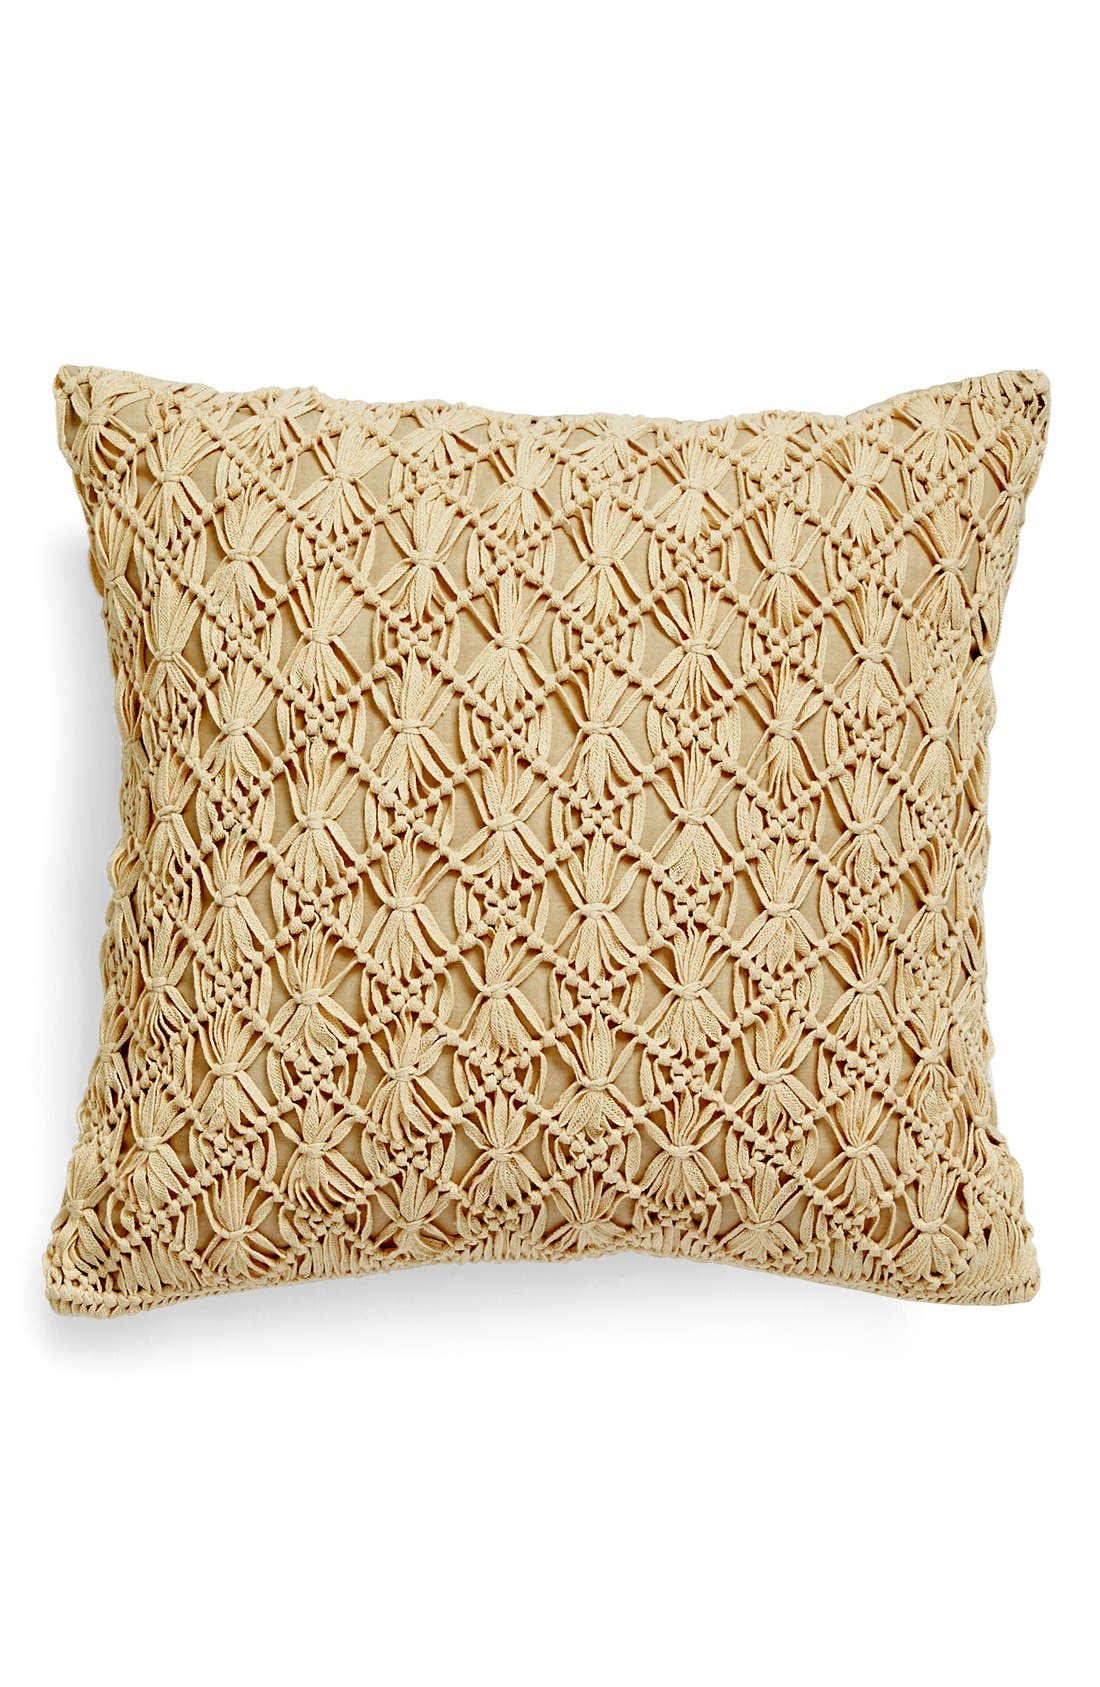 Alternate Image 1 Selected - Nordstrom at Home Macramé Pillow